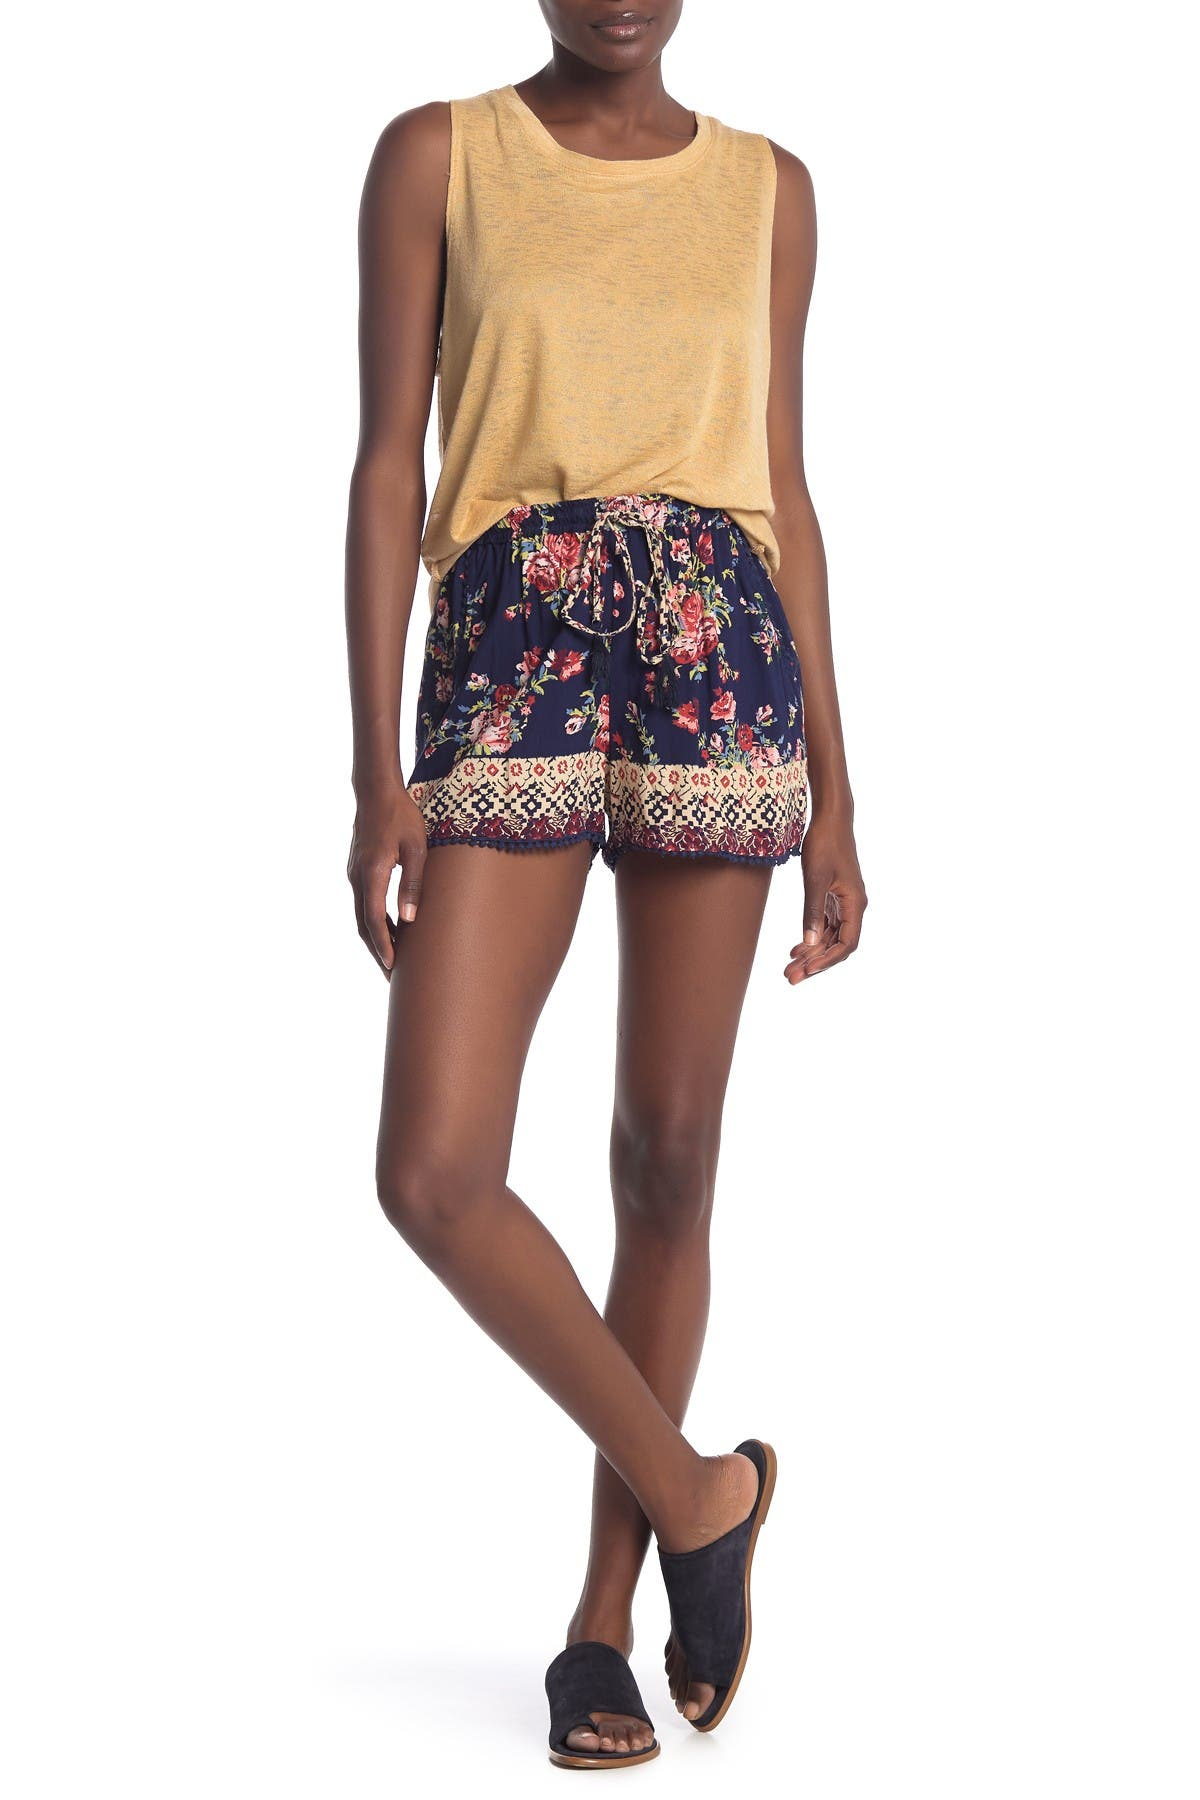 Image of Angie Floral Print Crochet Trim Drawstring Shorts